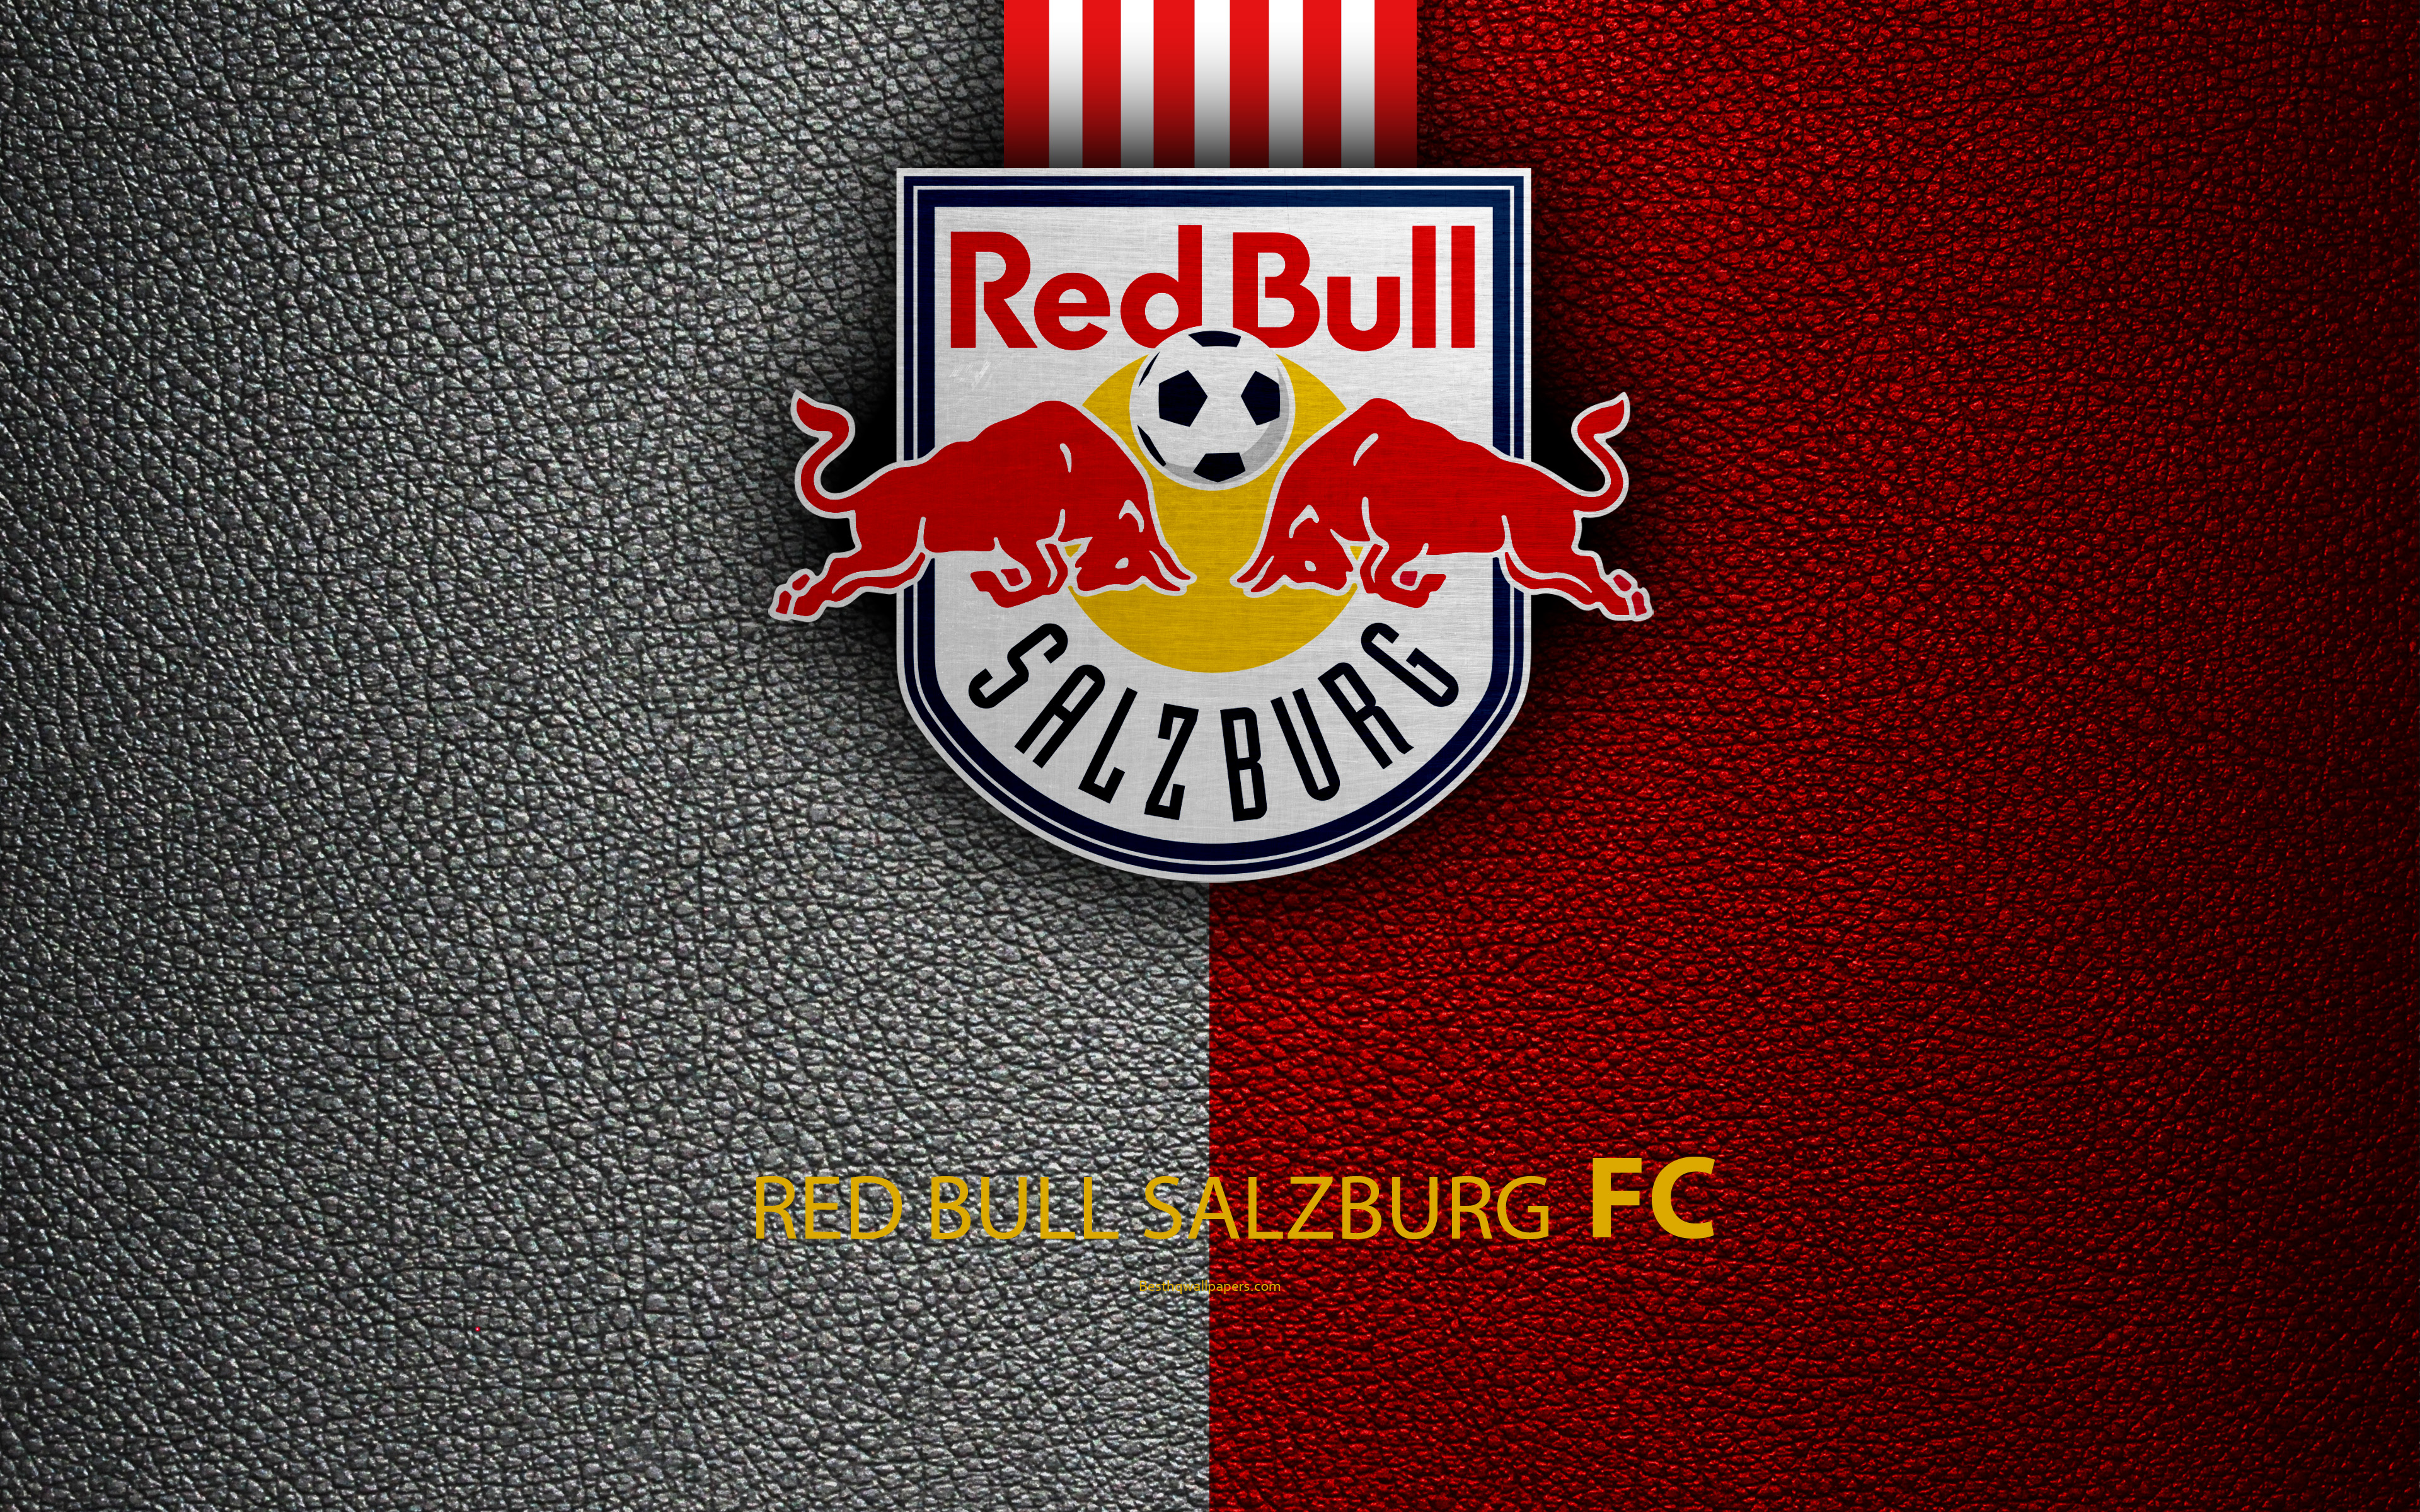 FC Red Bull Salzburg 4k Ultra HD Wallpaper Background Image 3840x2400